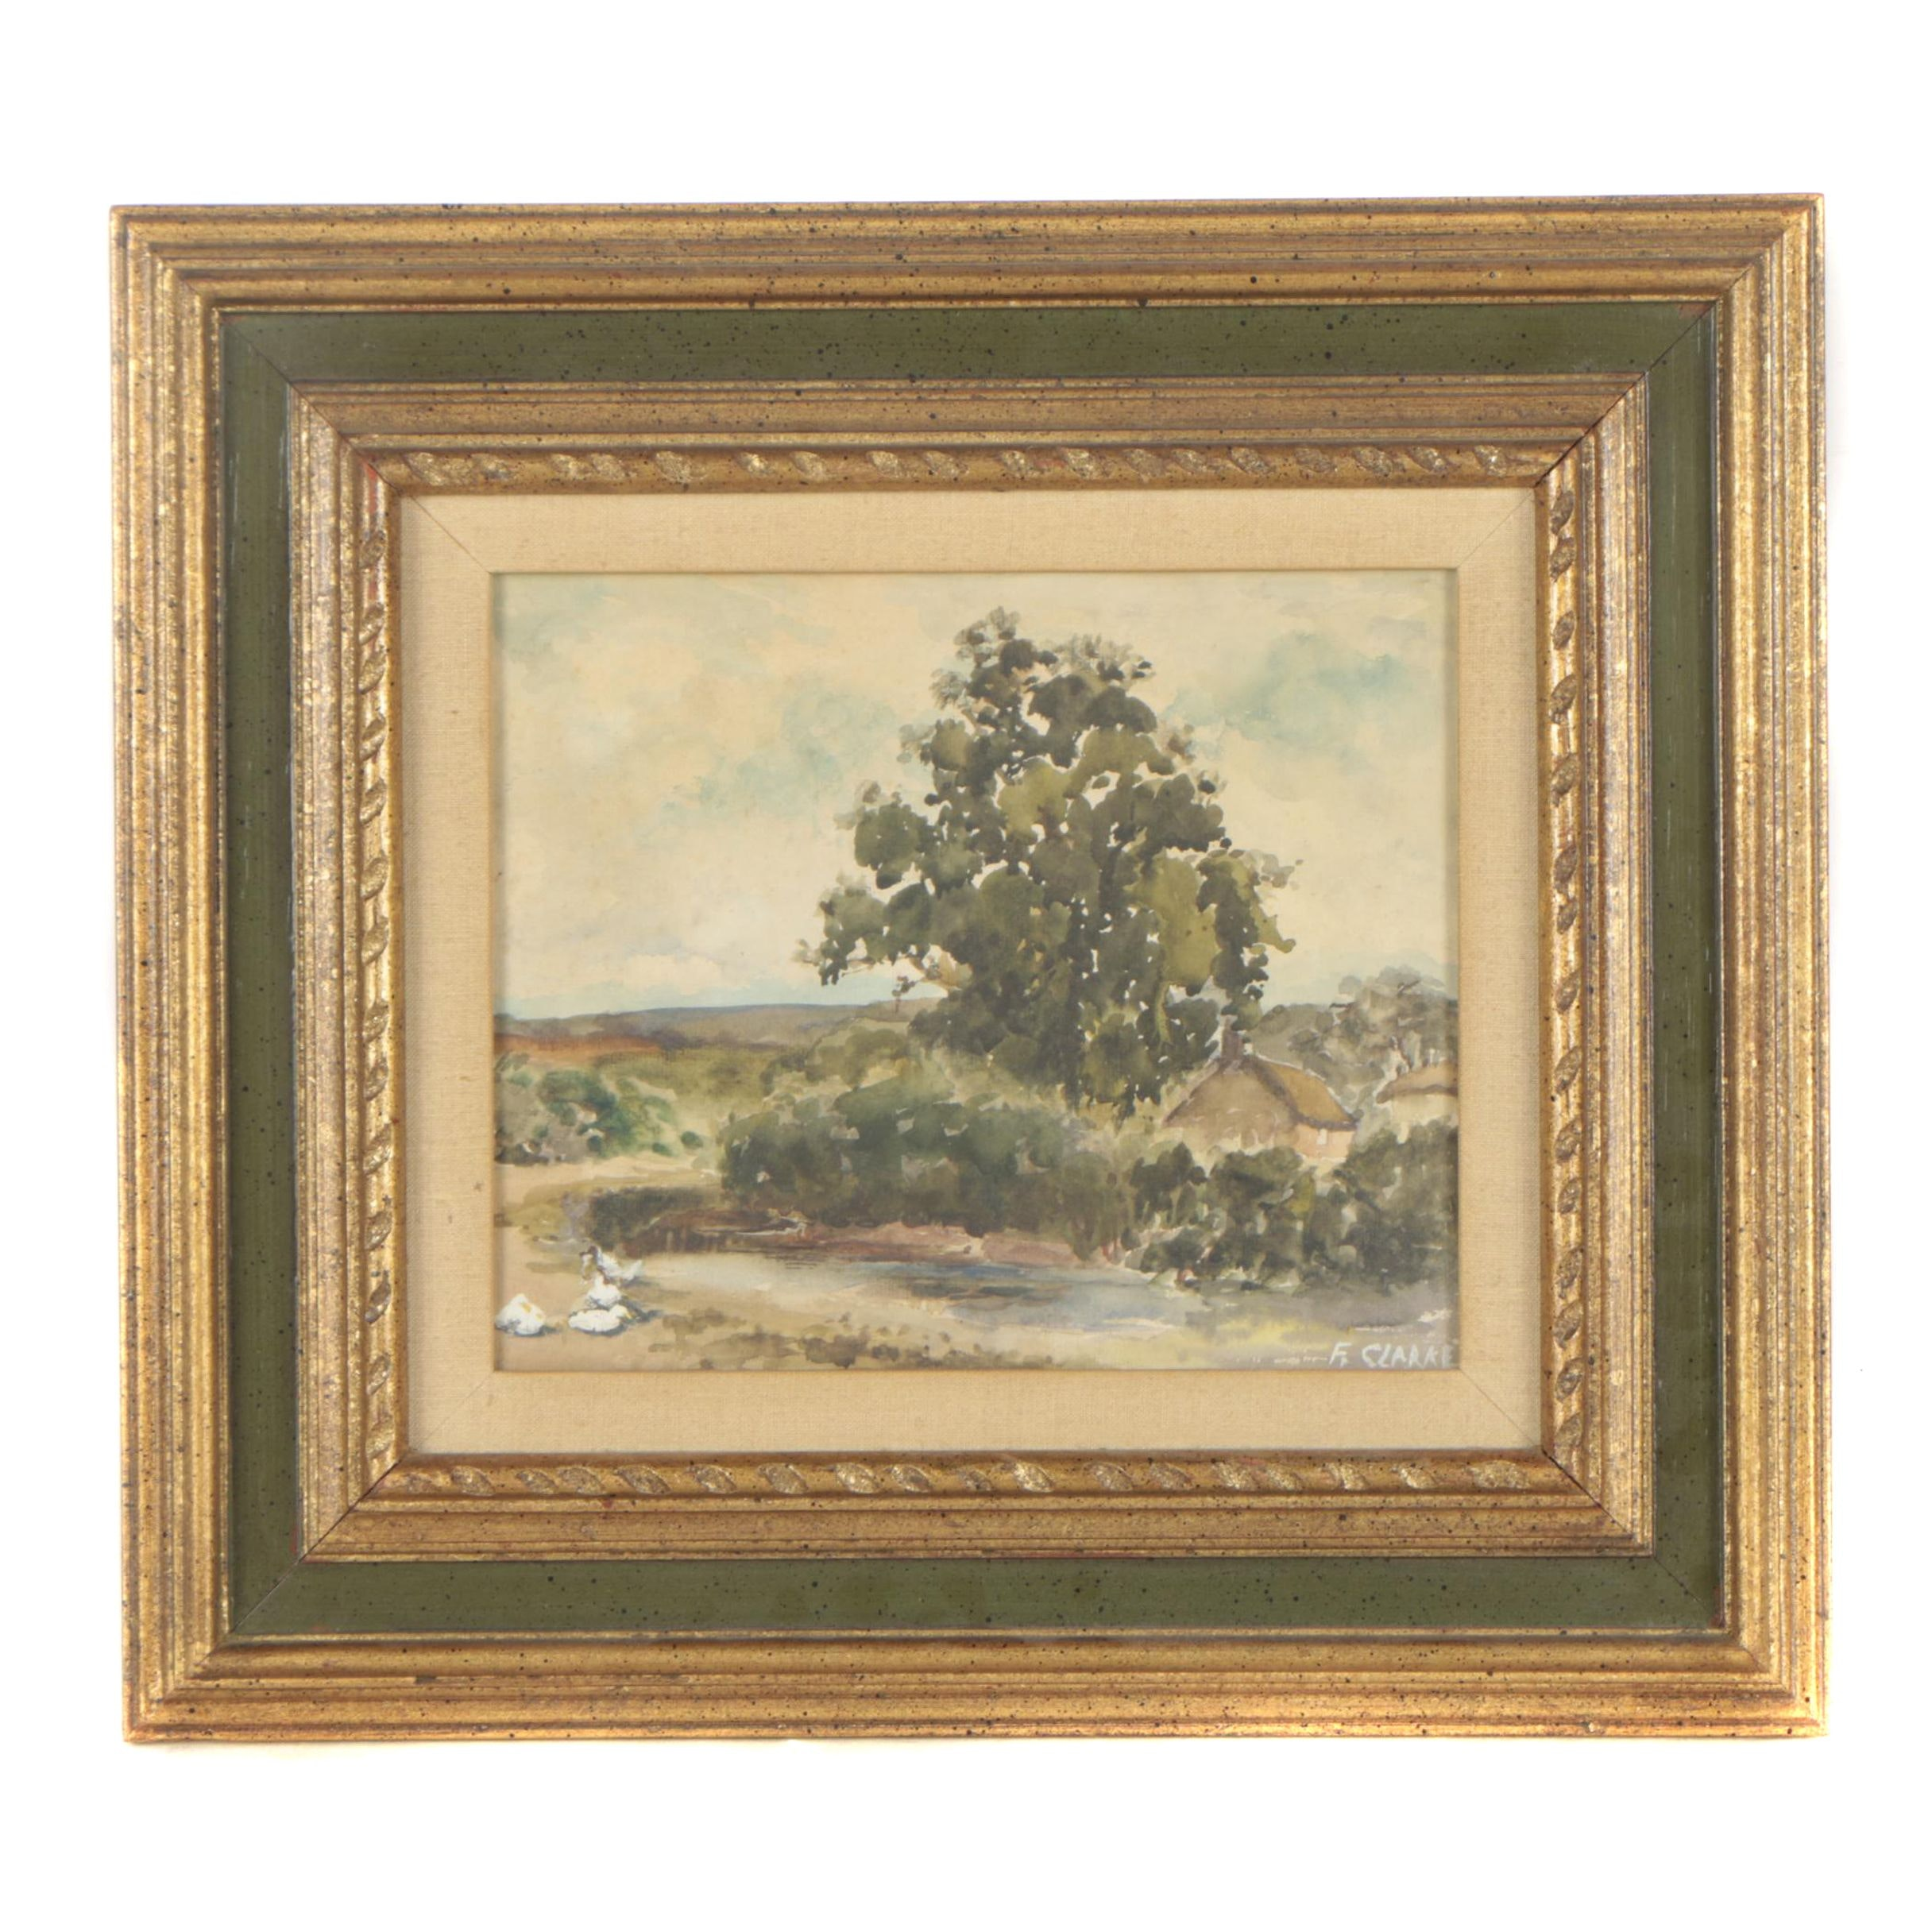 F. Clarke Watercolor Painting of Impressionist-Style Rural Landscape